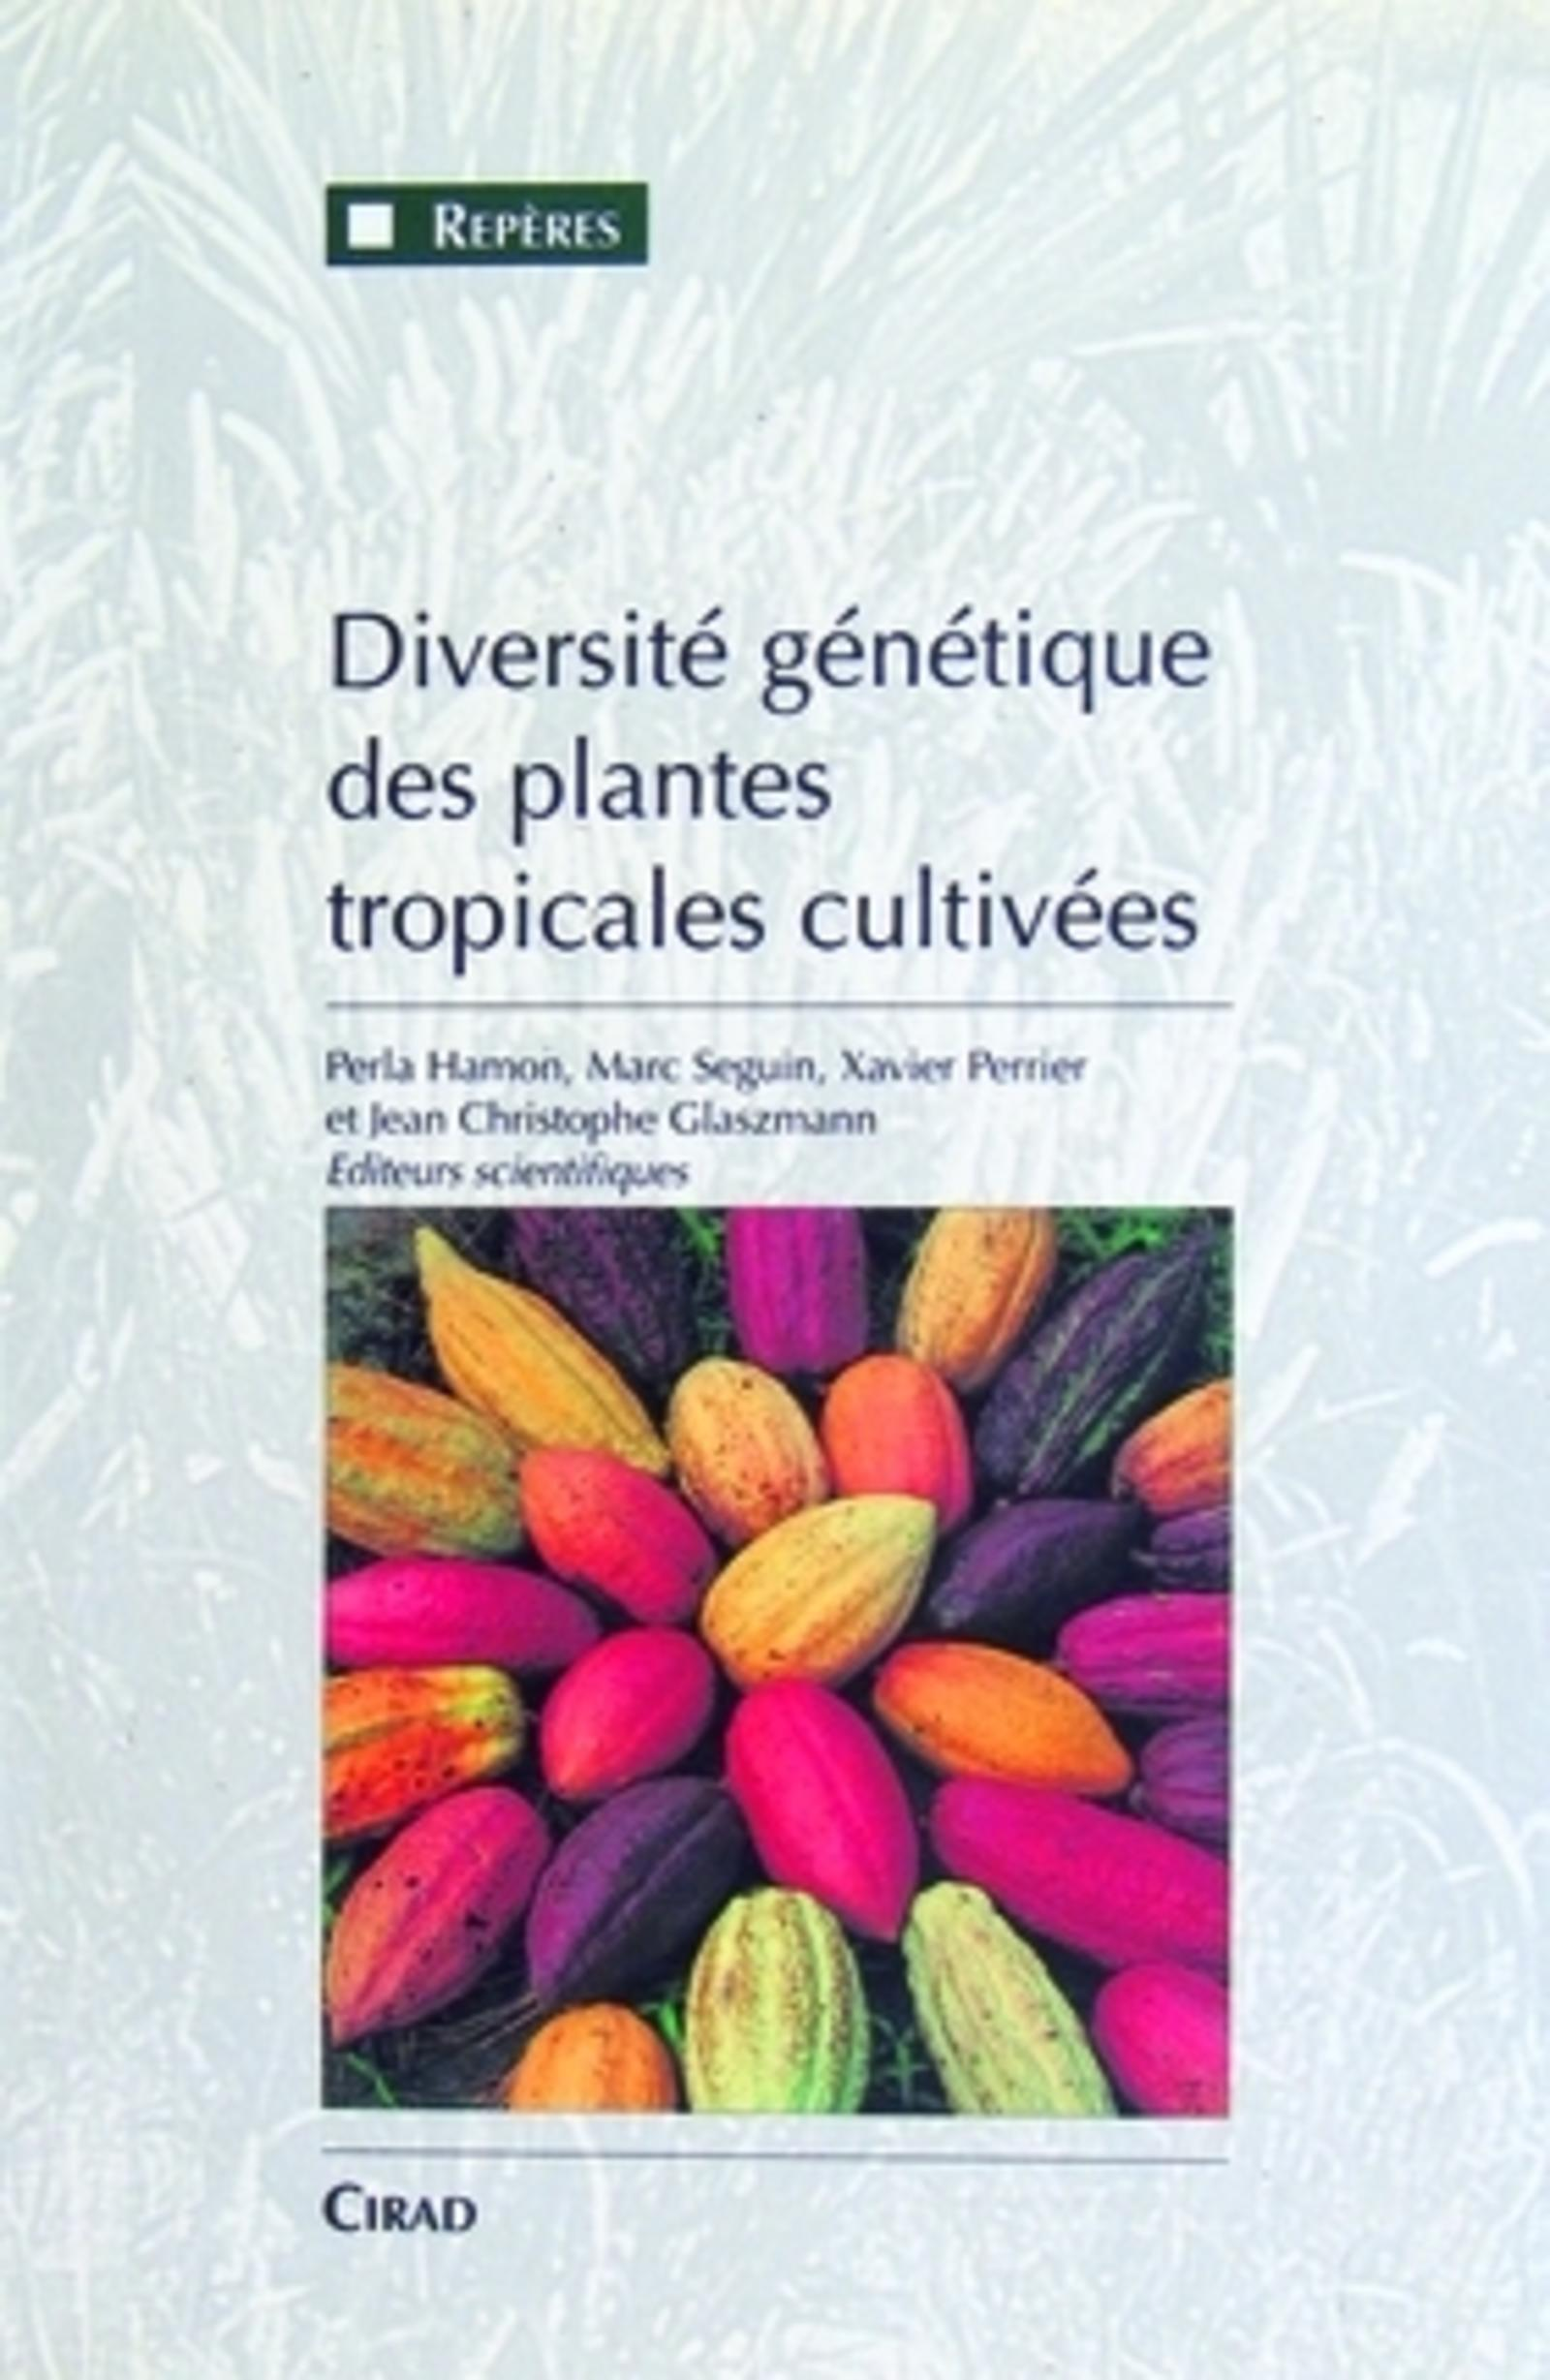 GENETIC DIVERSITY OF CULTIVATED TROPICAL PLANTS